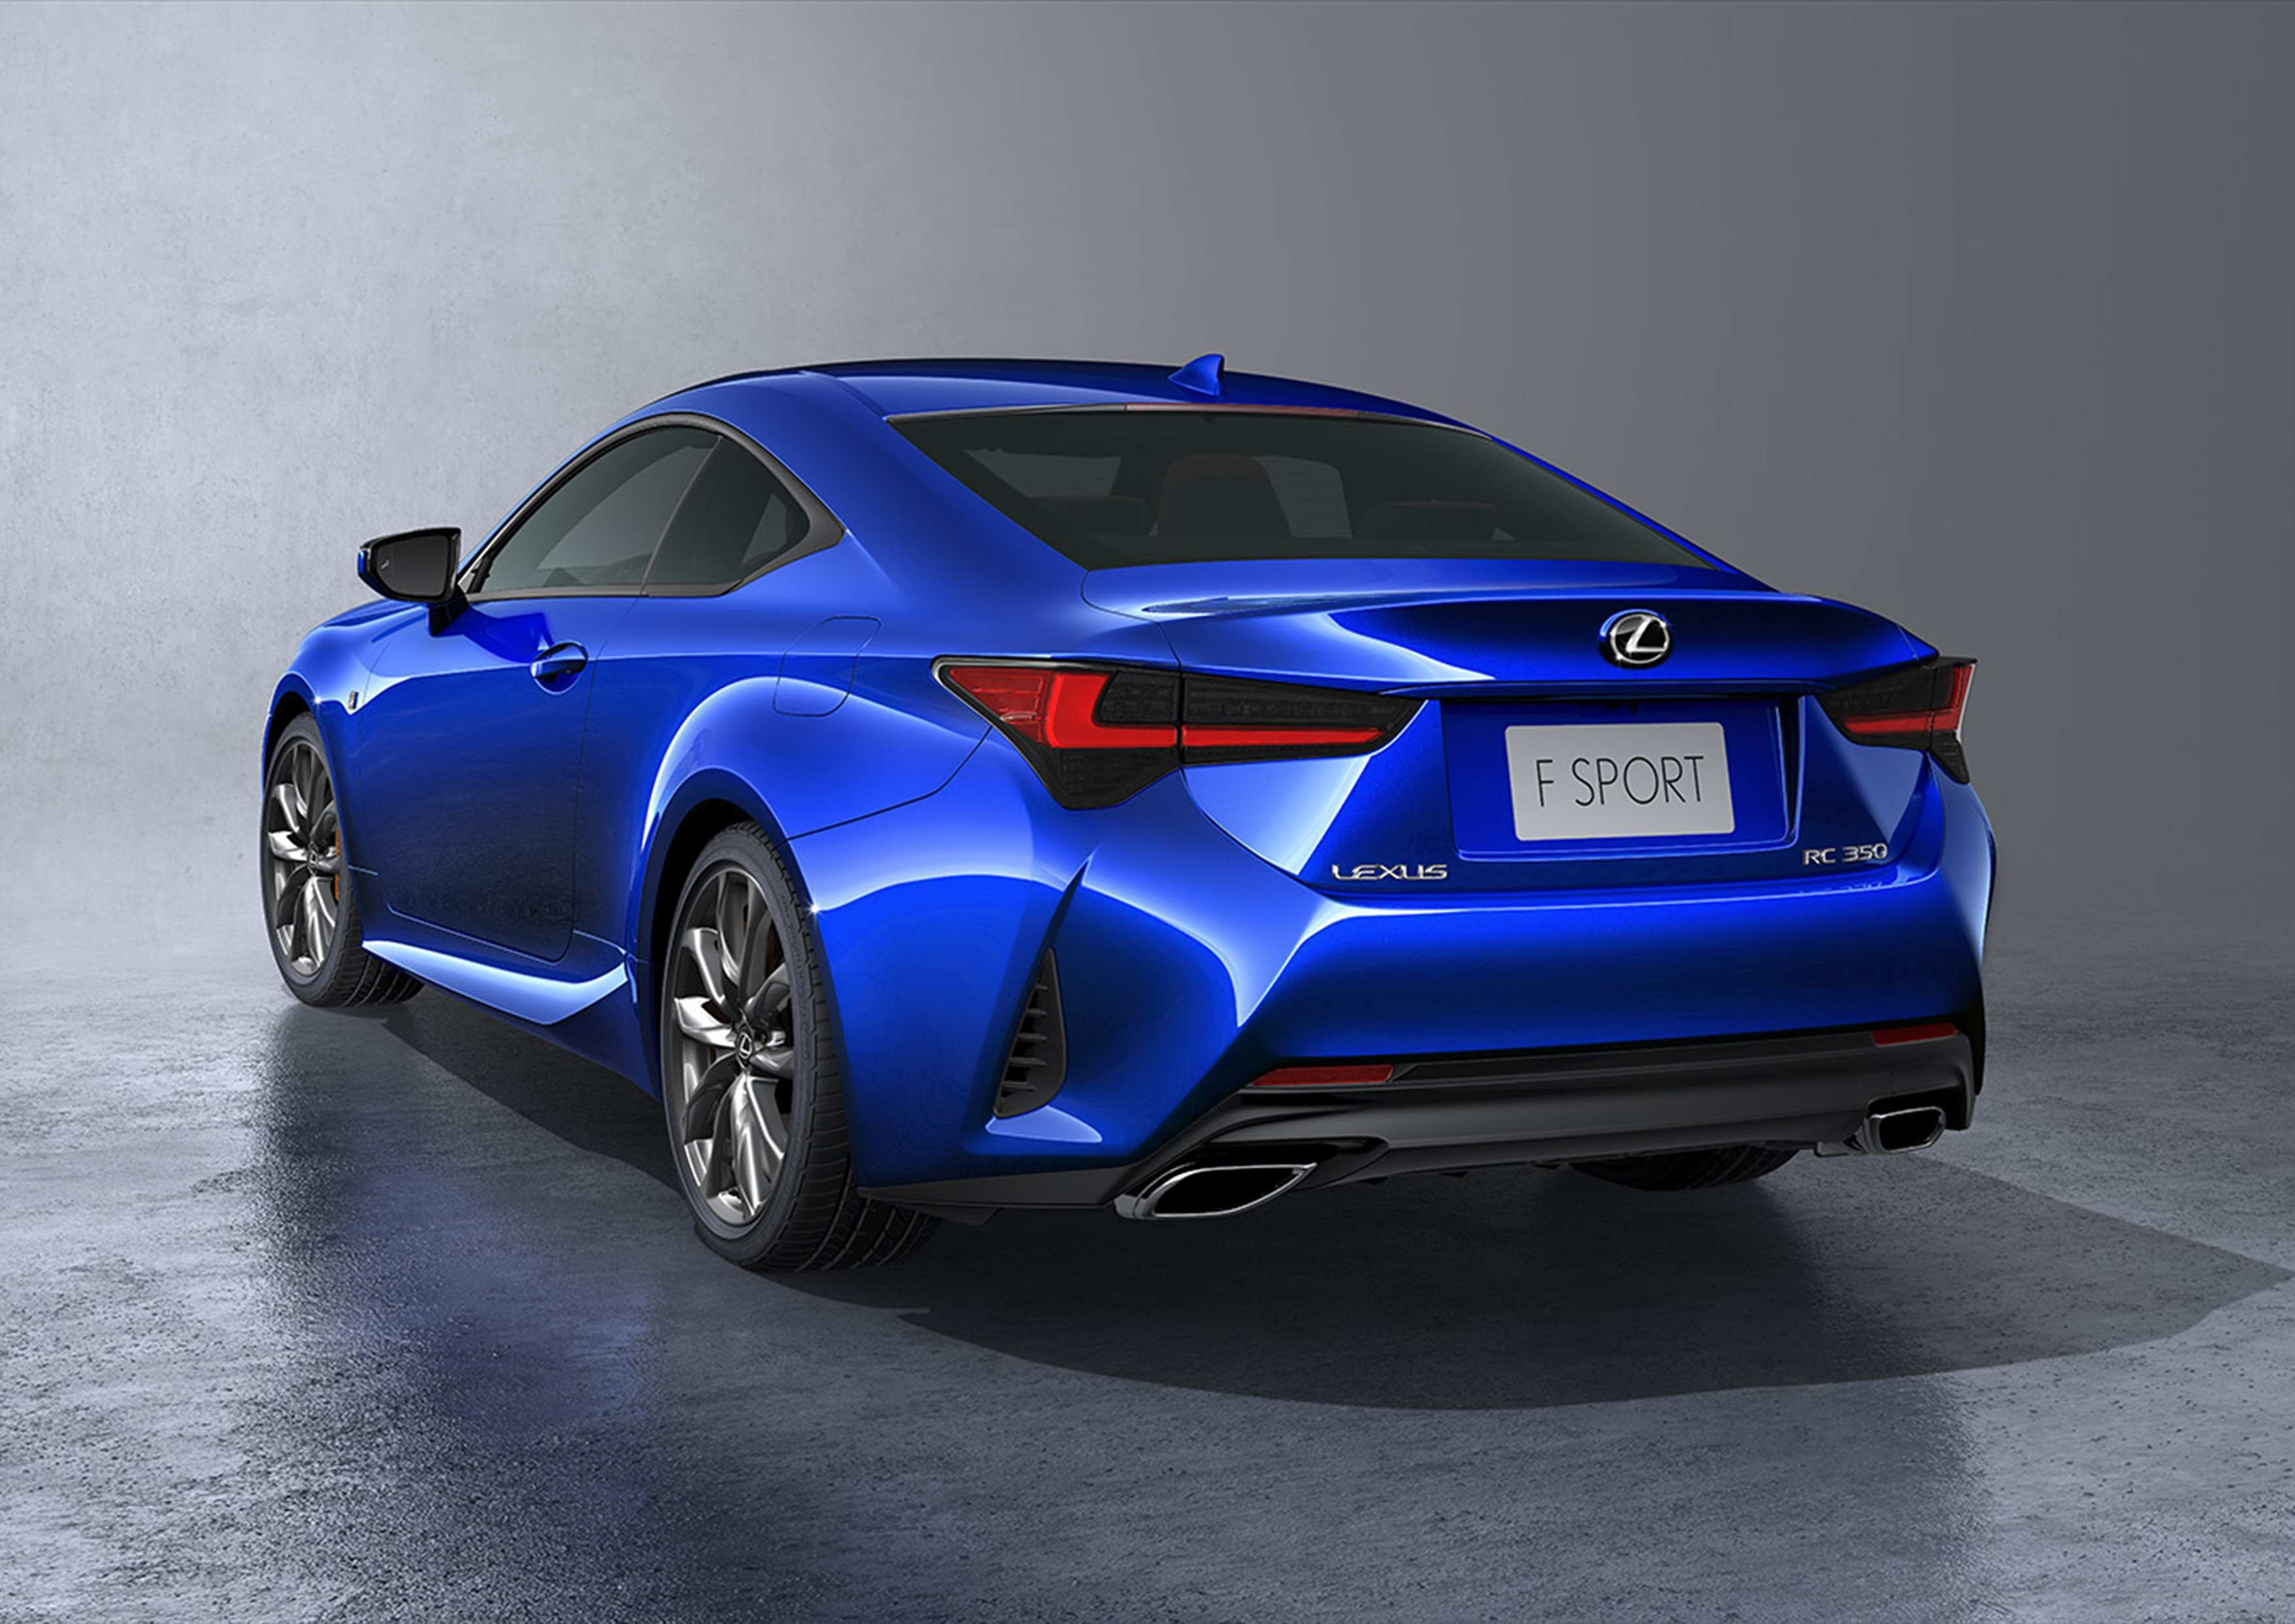 57 New Lexus F Sport 2020 Wallpaper with Lexus F Sport 2020